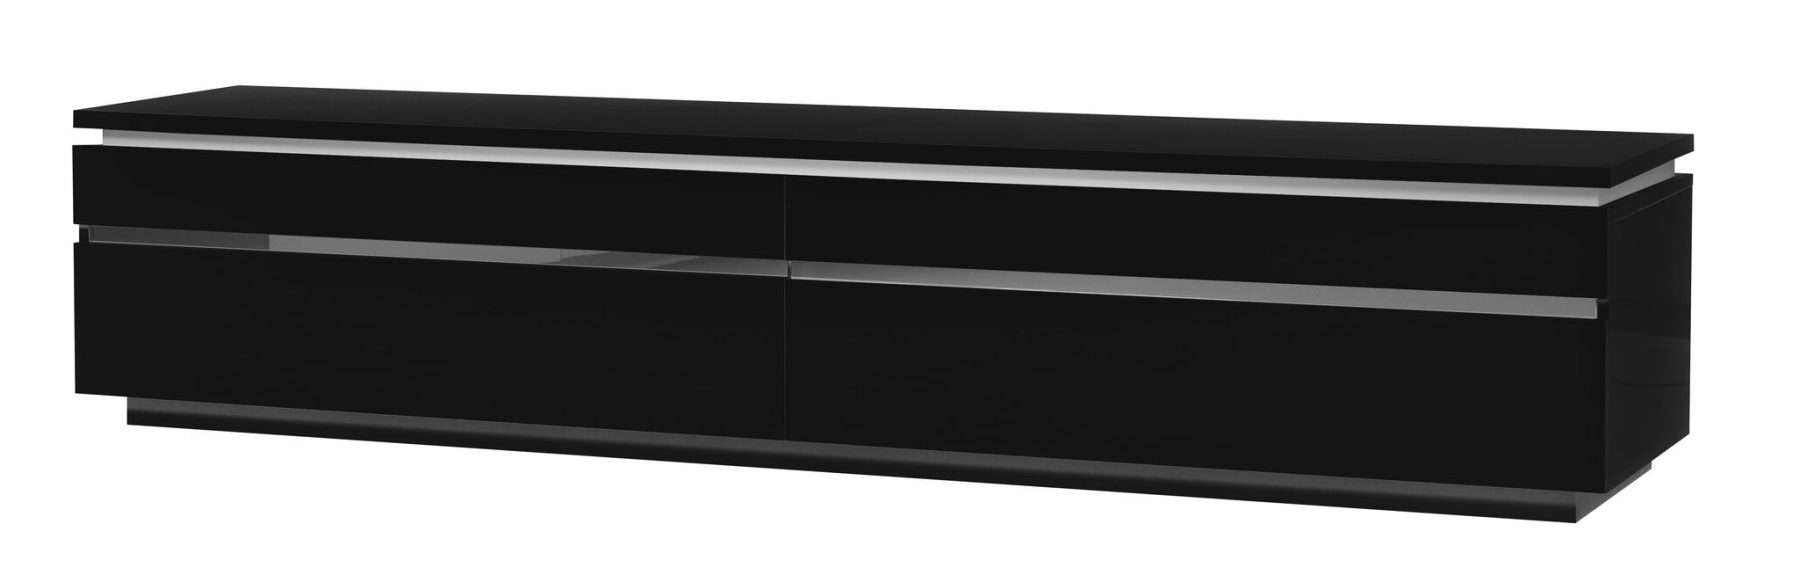 Logan Black Gloss Tv Unit & Lights | Free Delivery | Fads Pertaining To Black Gloss Tv Cabinets (View 14 of 20)